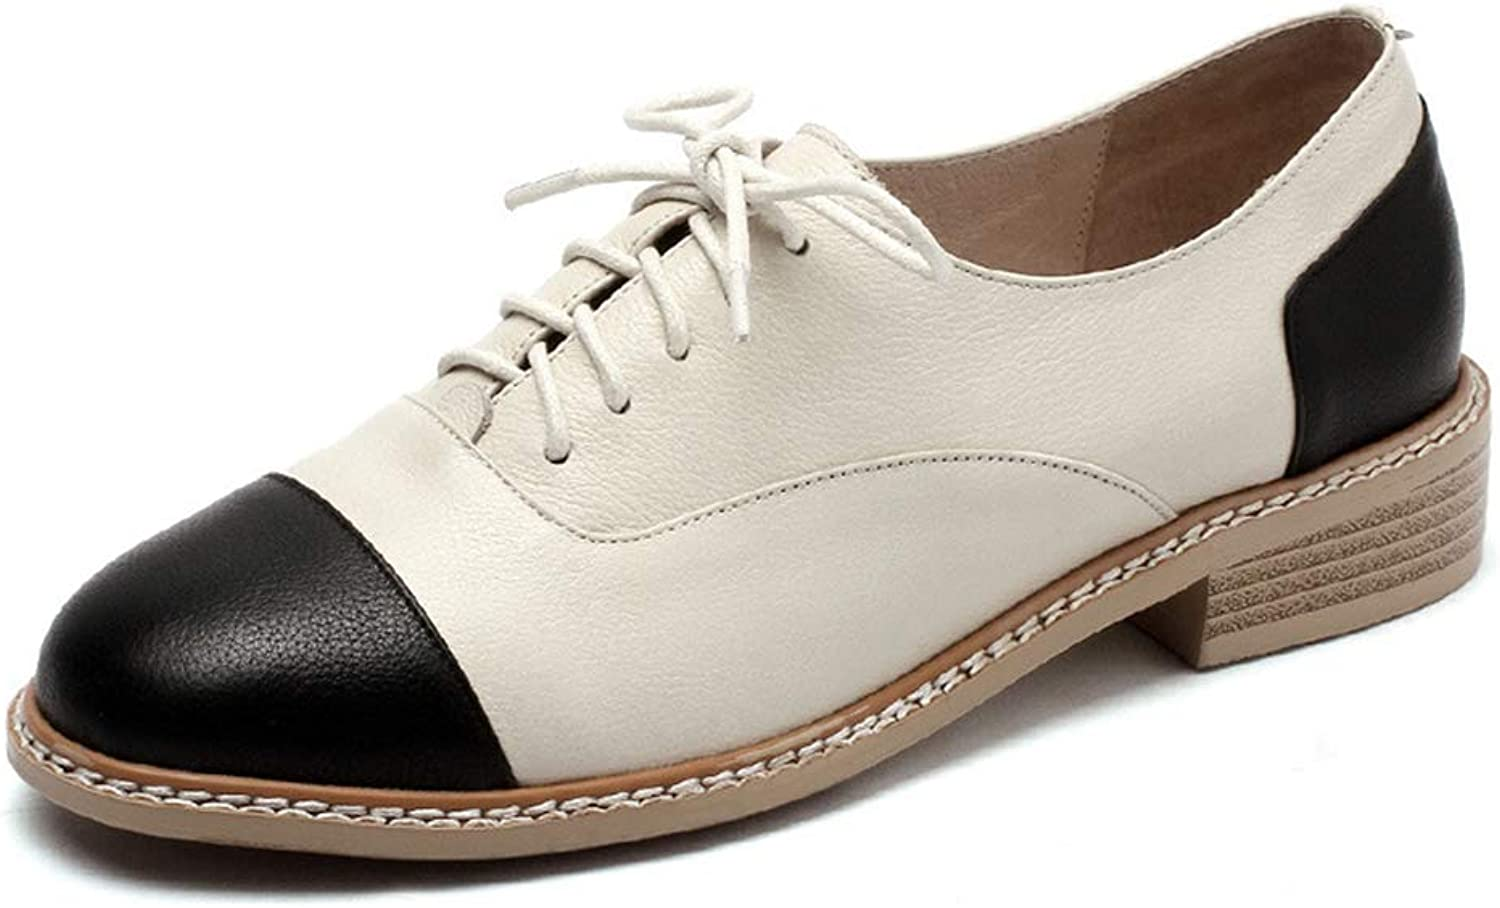 Women's shoes Spring Fall Lace-Up Small Leather shoes Bullock shoes Vintage Ladies shoes Low-Top Casual shoes,White,40